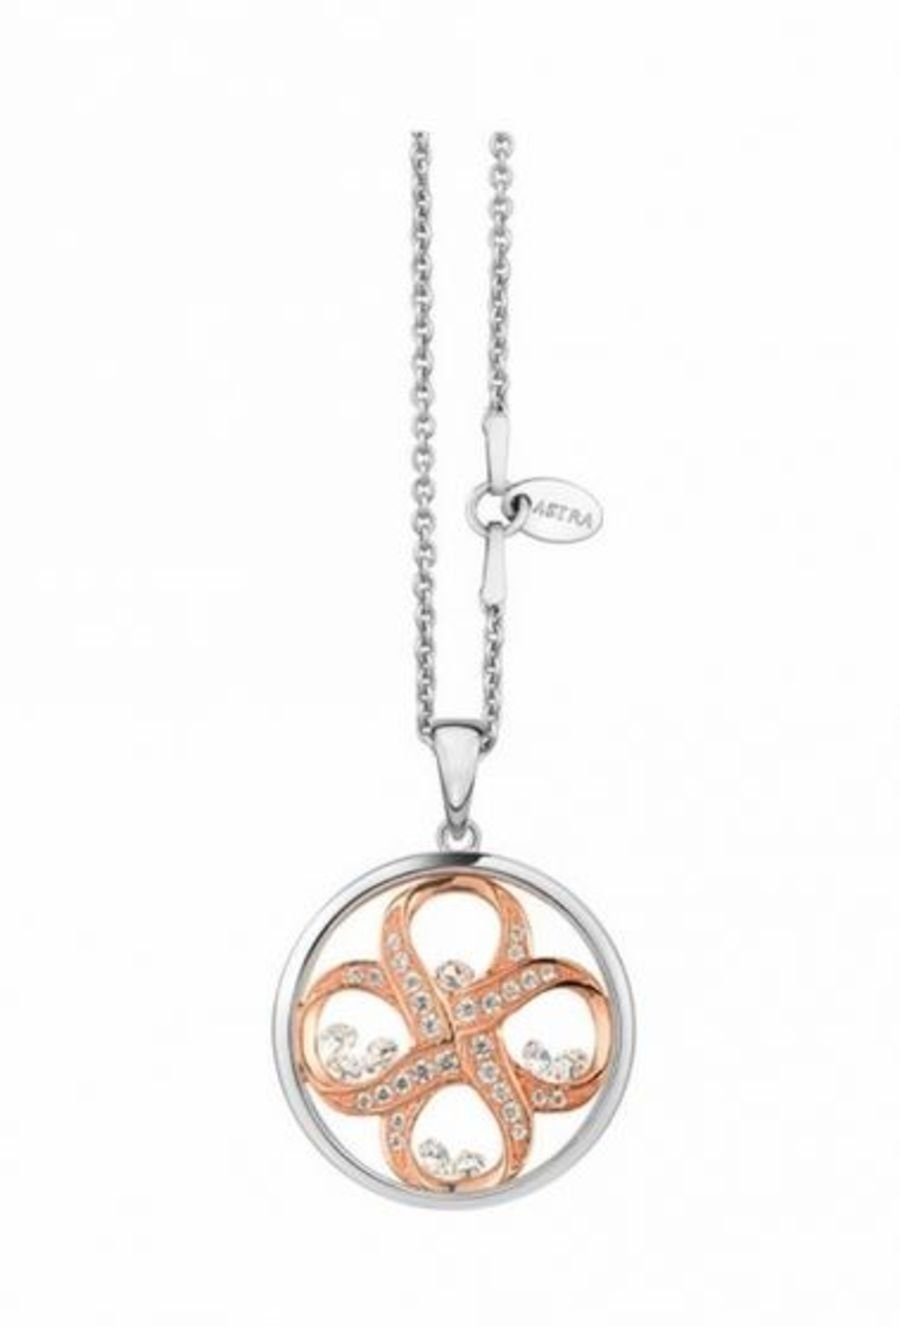 Eternal Peace Silver Pendant & Chain by Astra Jewellery